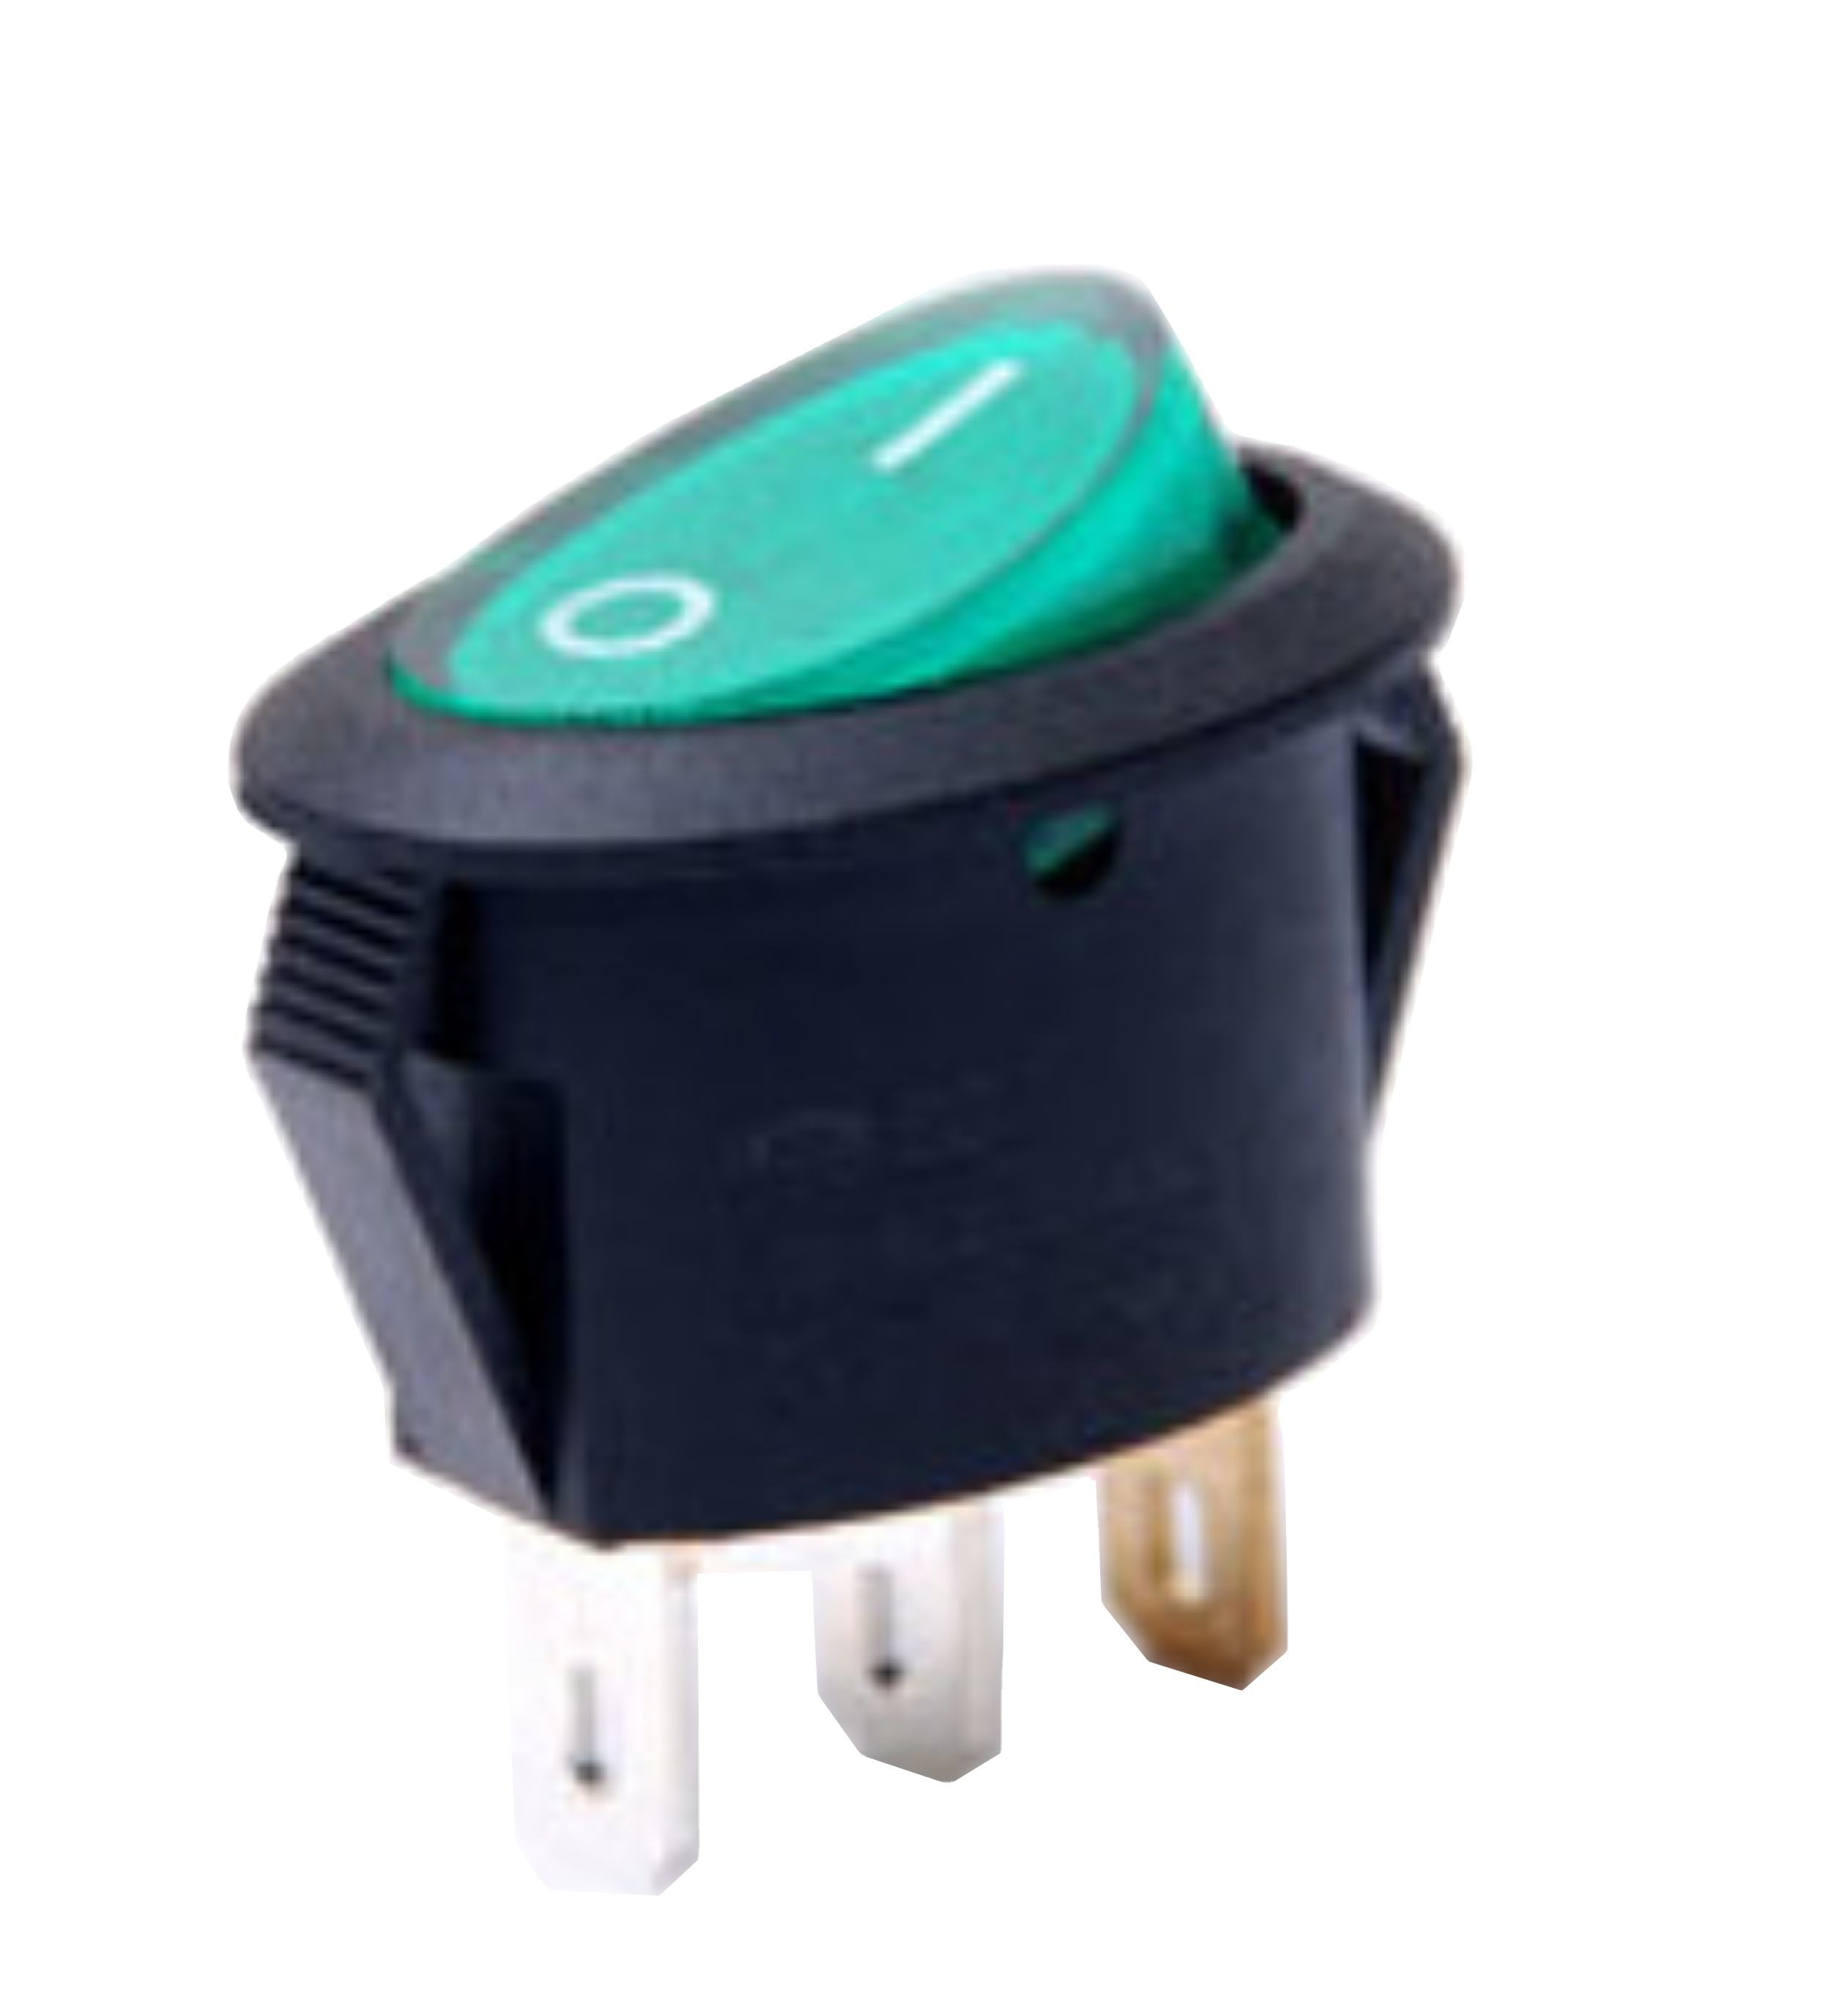 Rocker Switch Round Light Mini 3pins Or Unlight